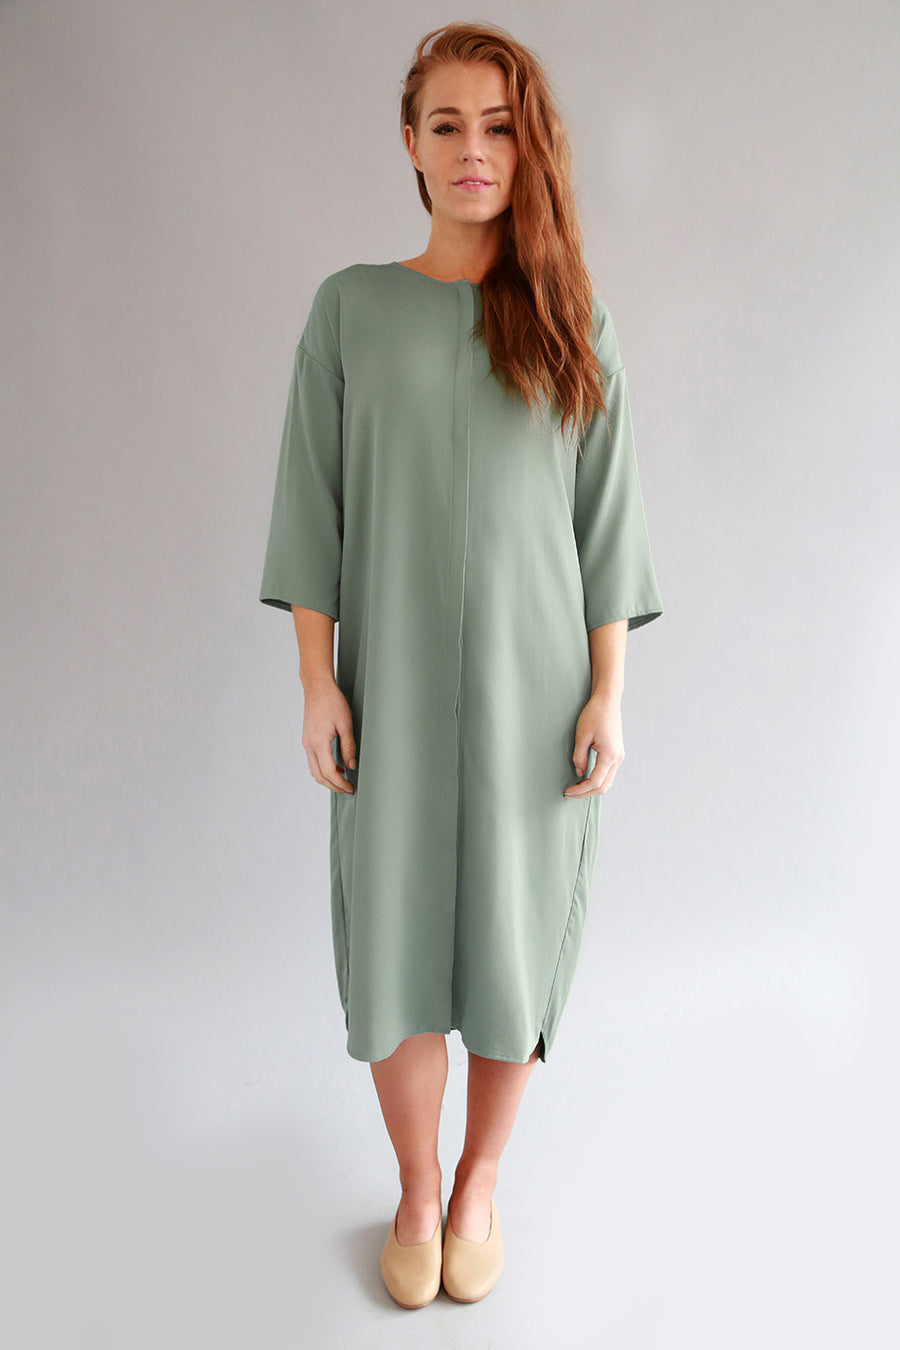 SEA FOAM MAIA DRESS - SOLIKA